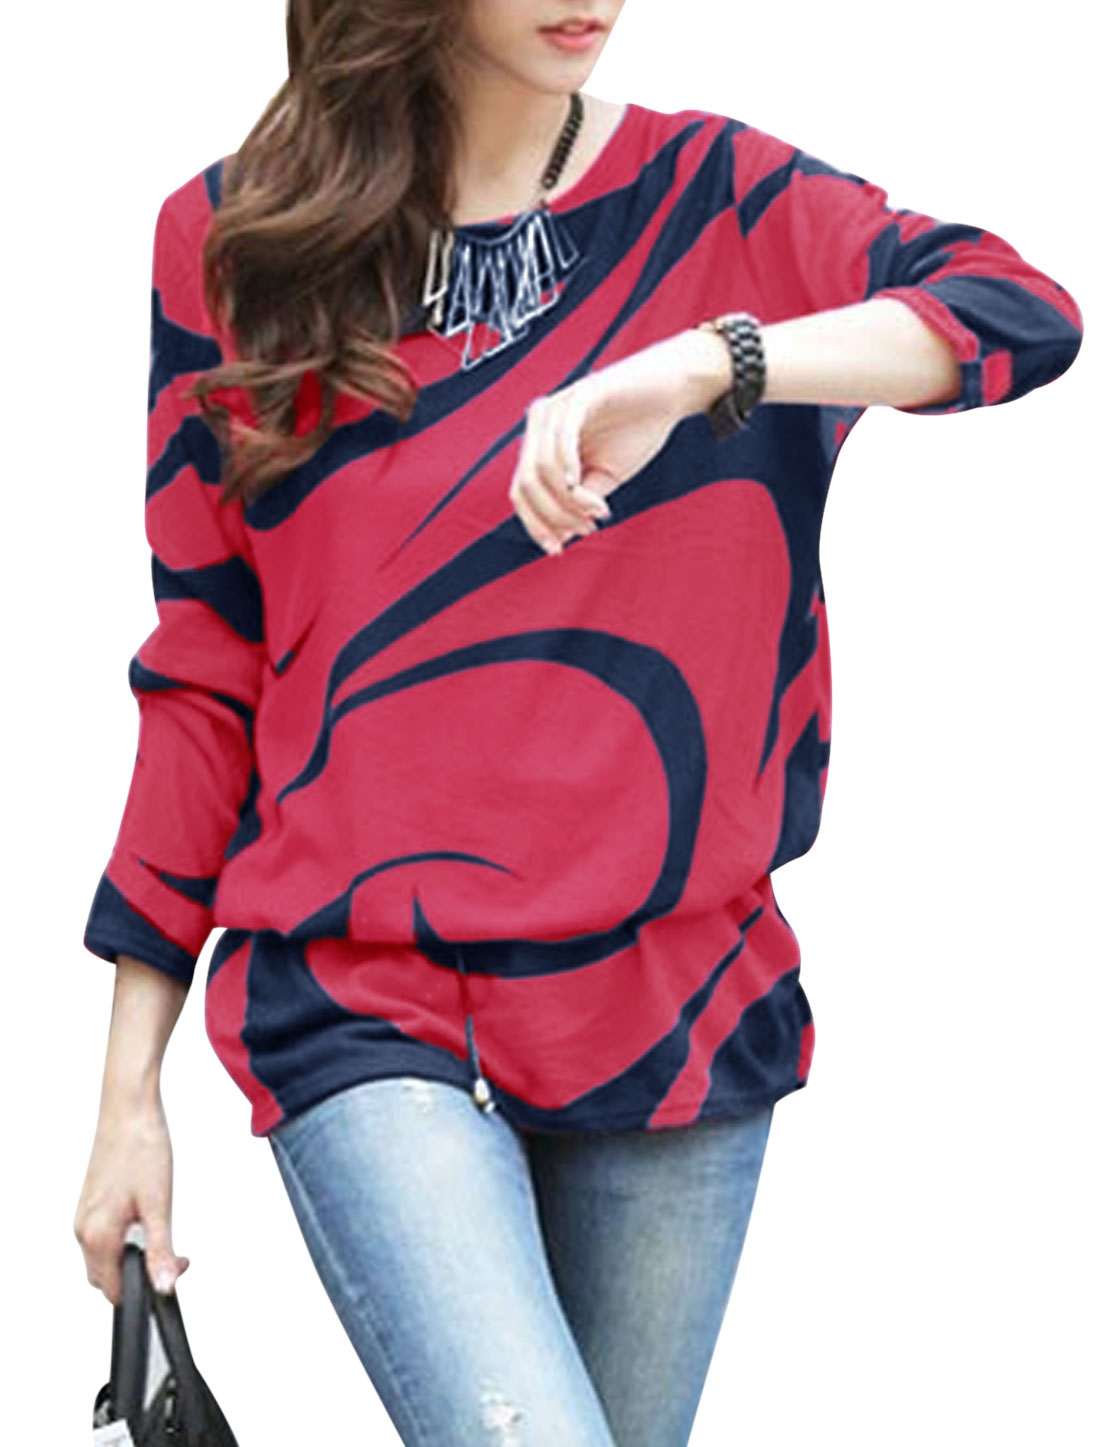 Ladies Fuchsia Novelty Prints Pullover Contrast Color Tunic Knit Shirt S